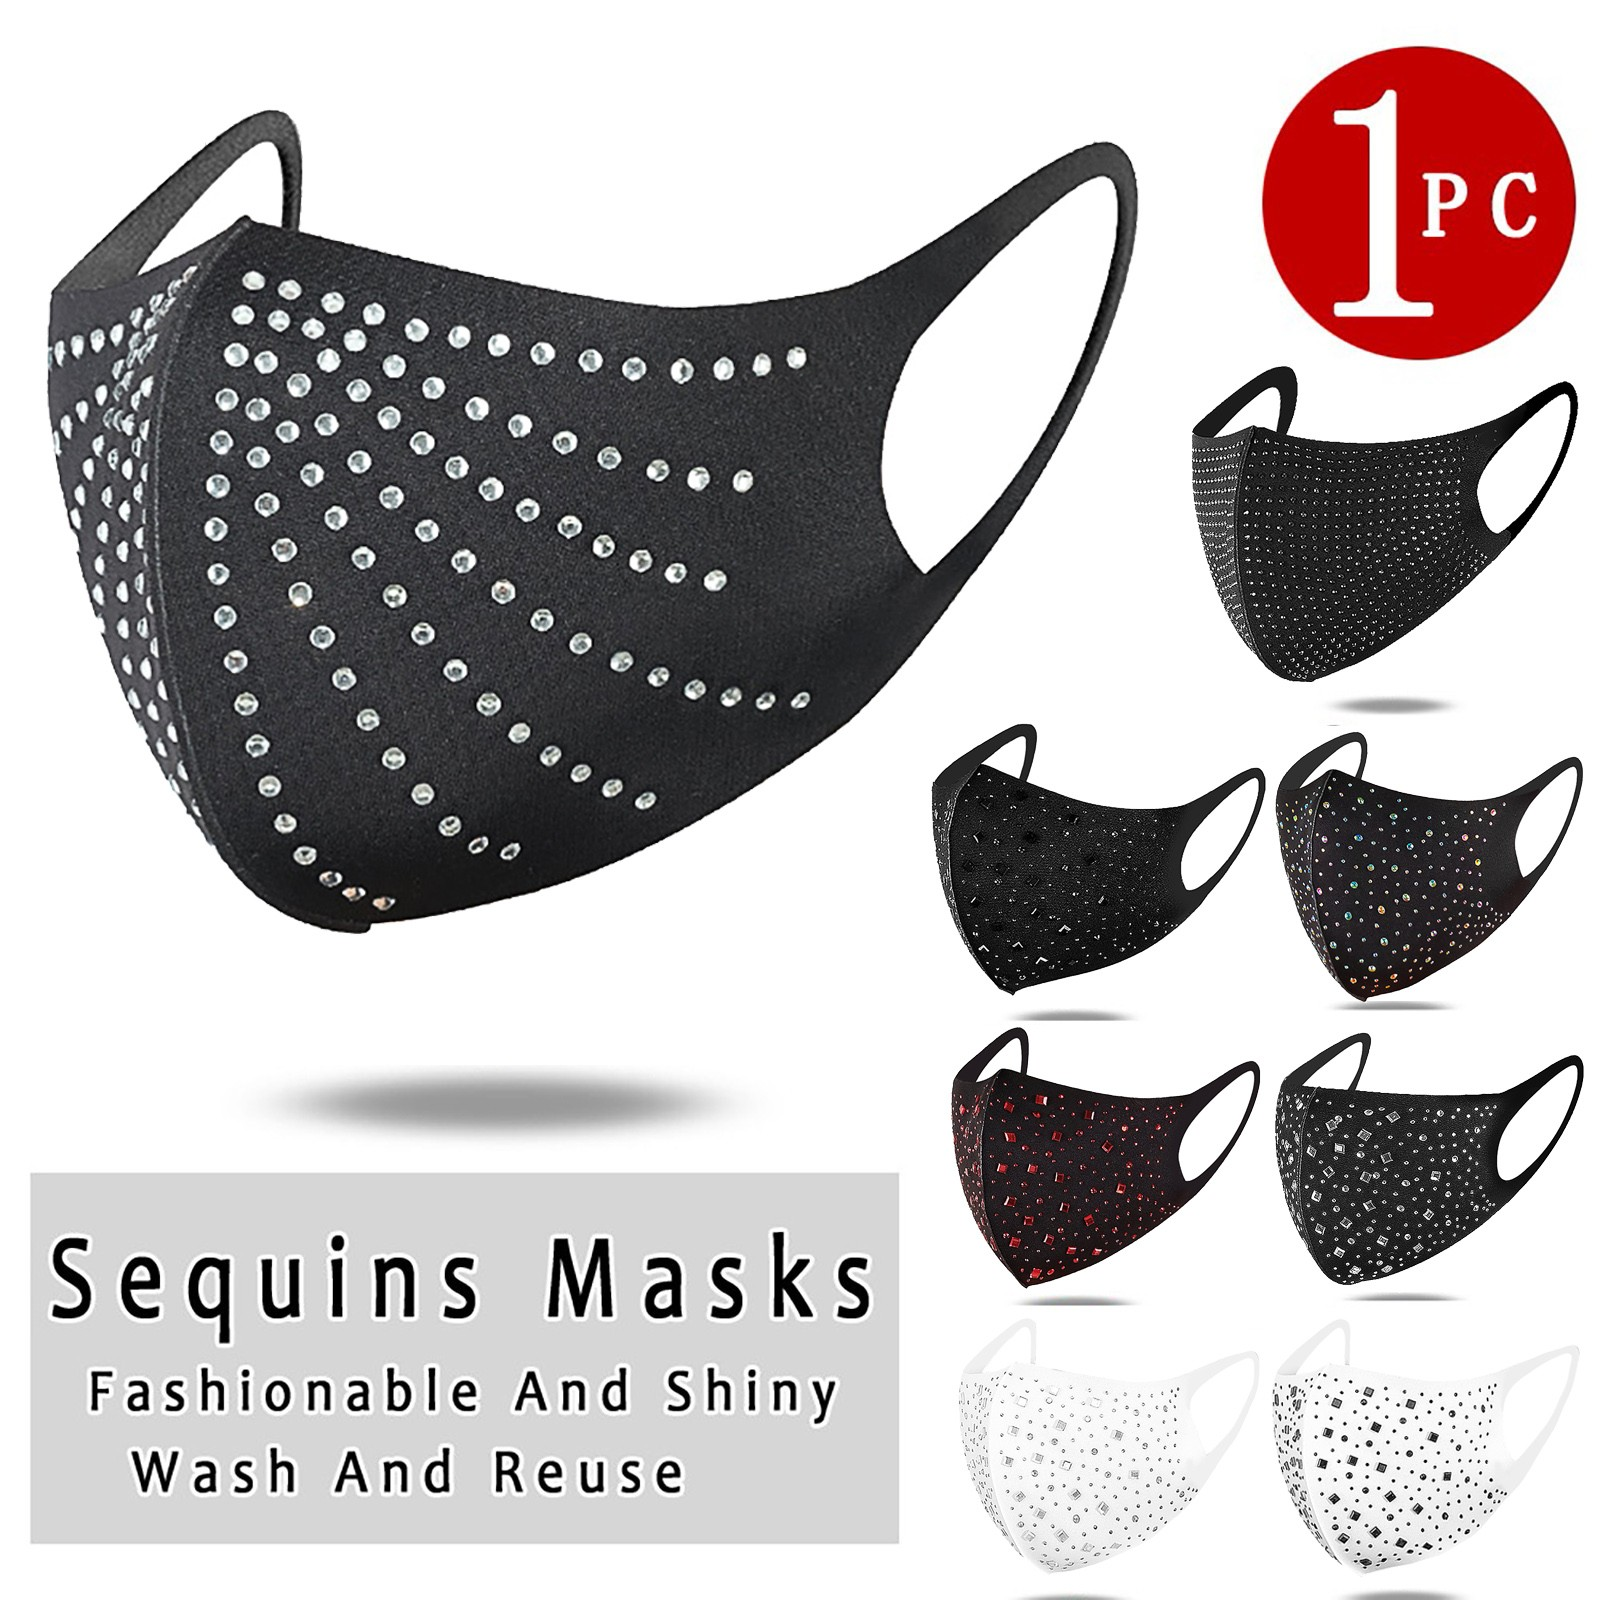 Breathable Diamonds Mouth Mask Washable And Reusable Party Mask Decoration For Face Rhinestone Mask Scarf masque mascherine 1